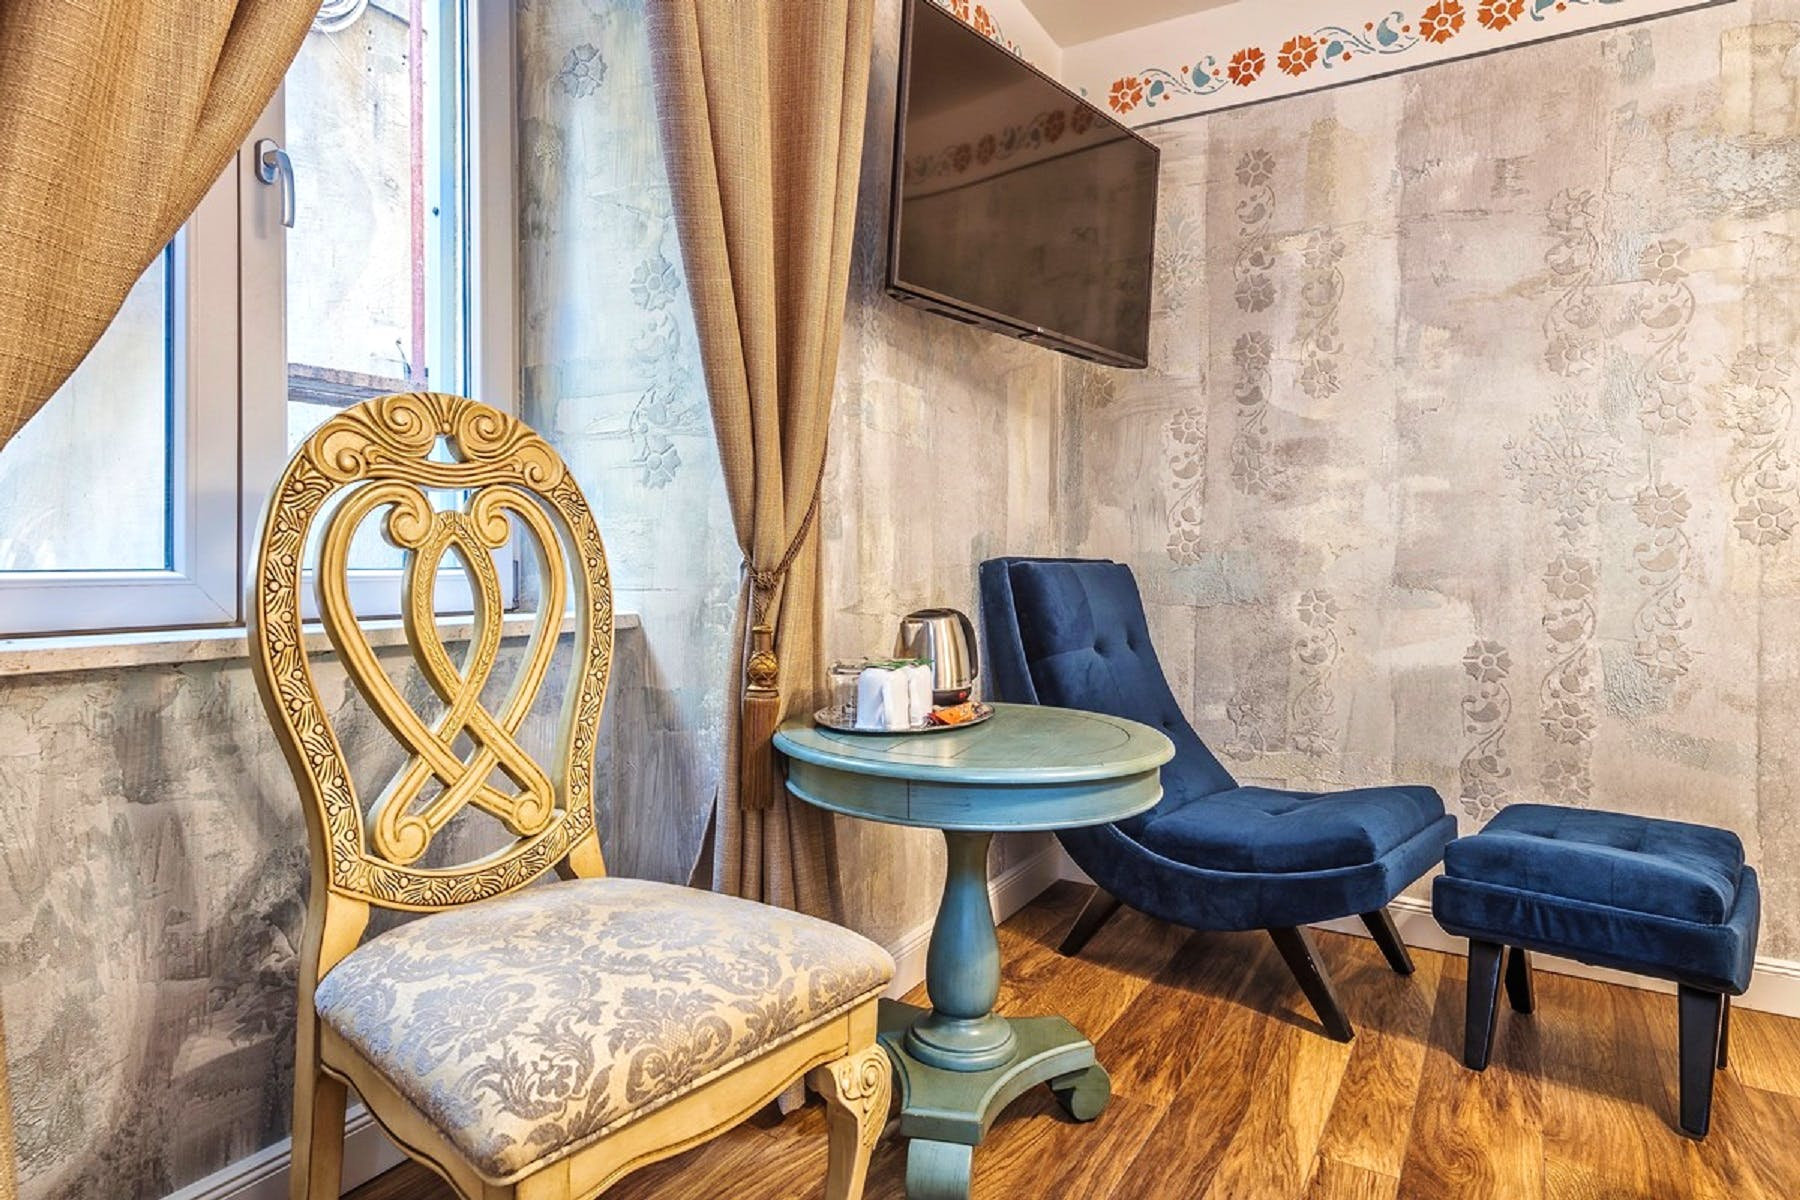 Though antique in design, rooms are fully equipped with modern devices